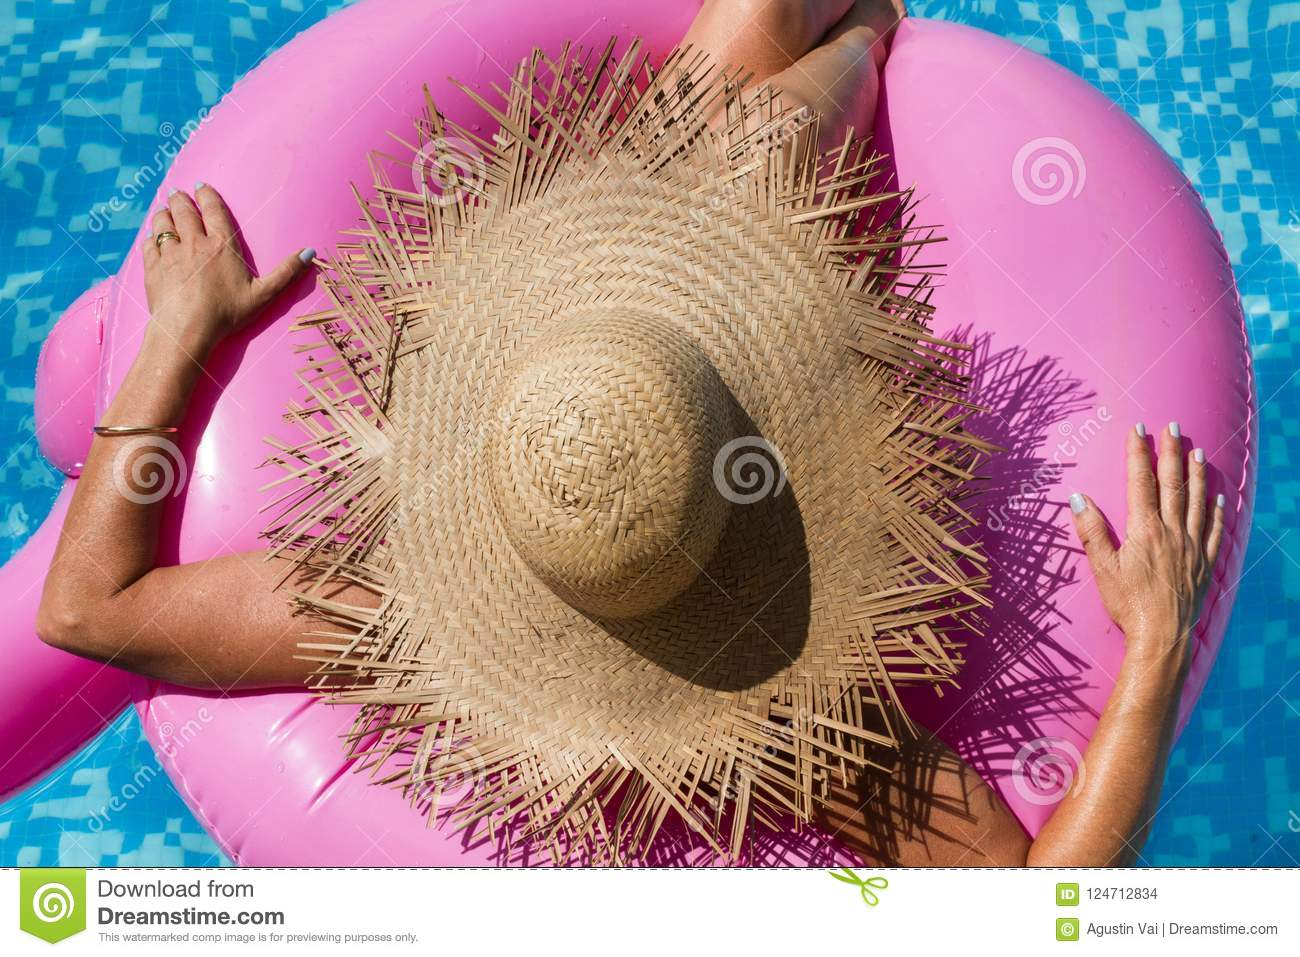 Woman with straw hat in the pool with an inflatable pink toy